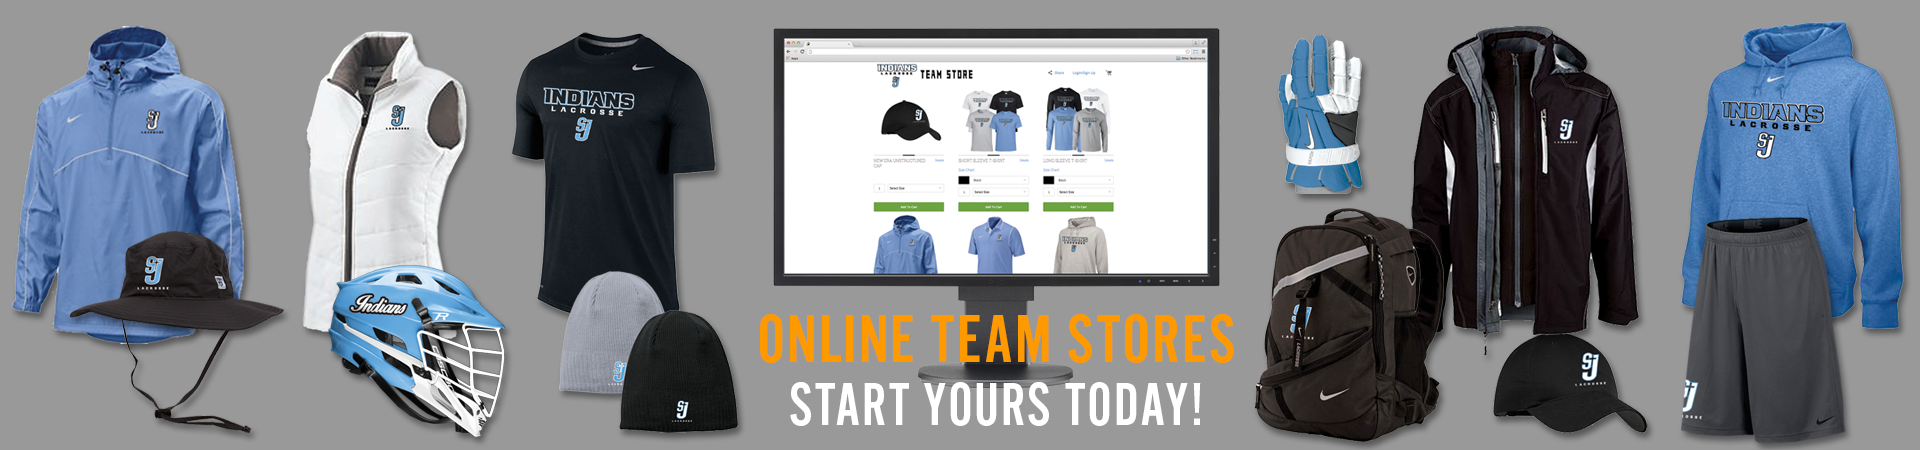 Custom online team stores